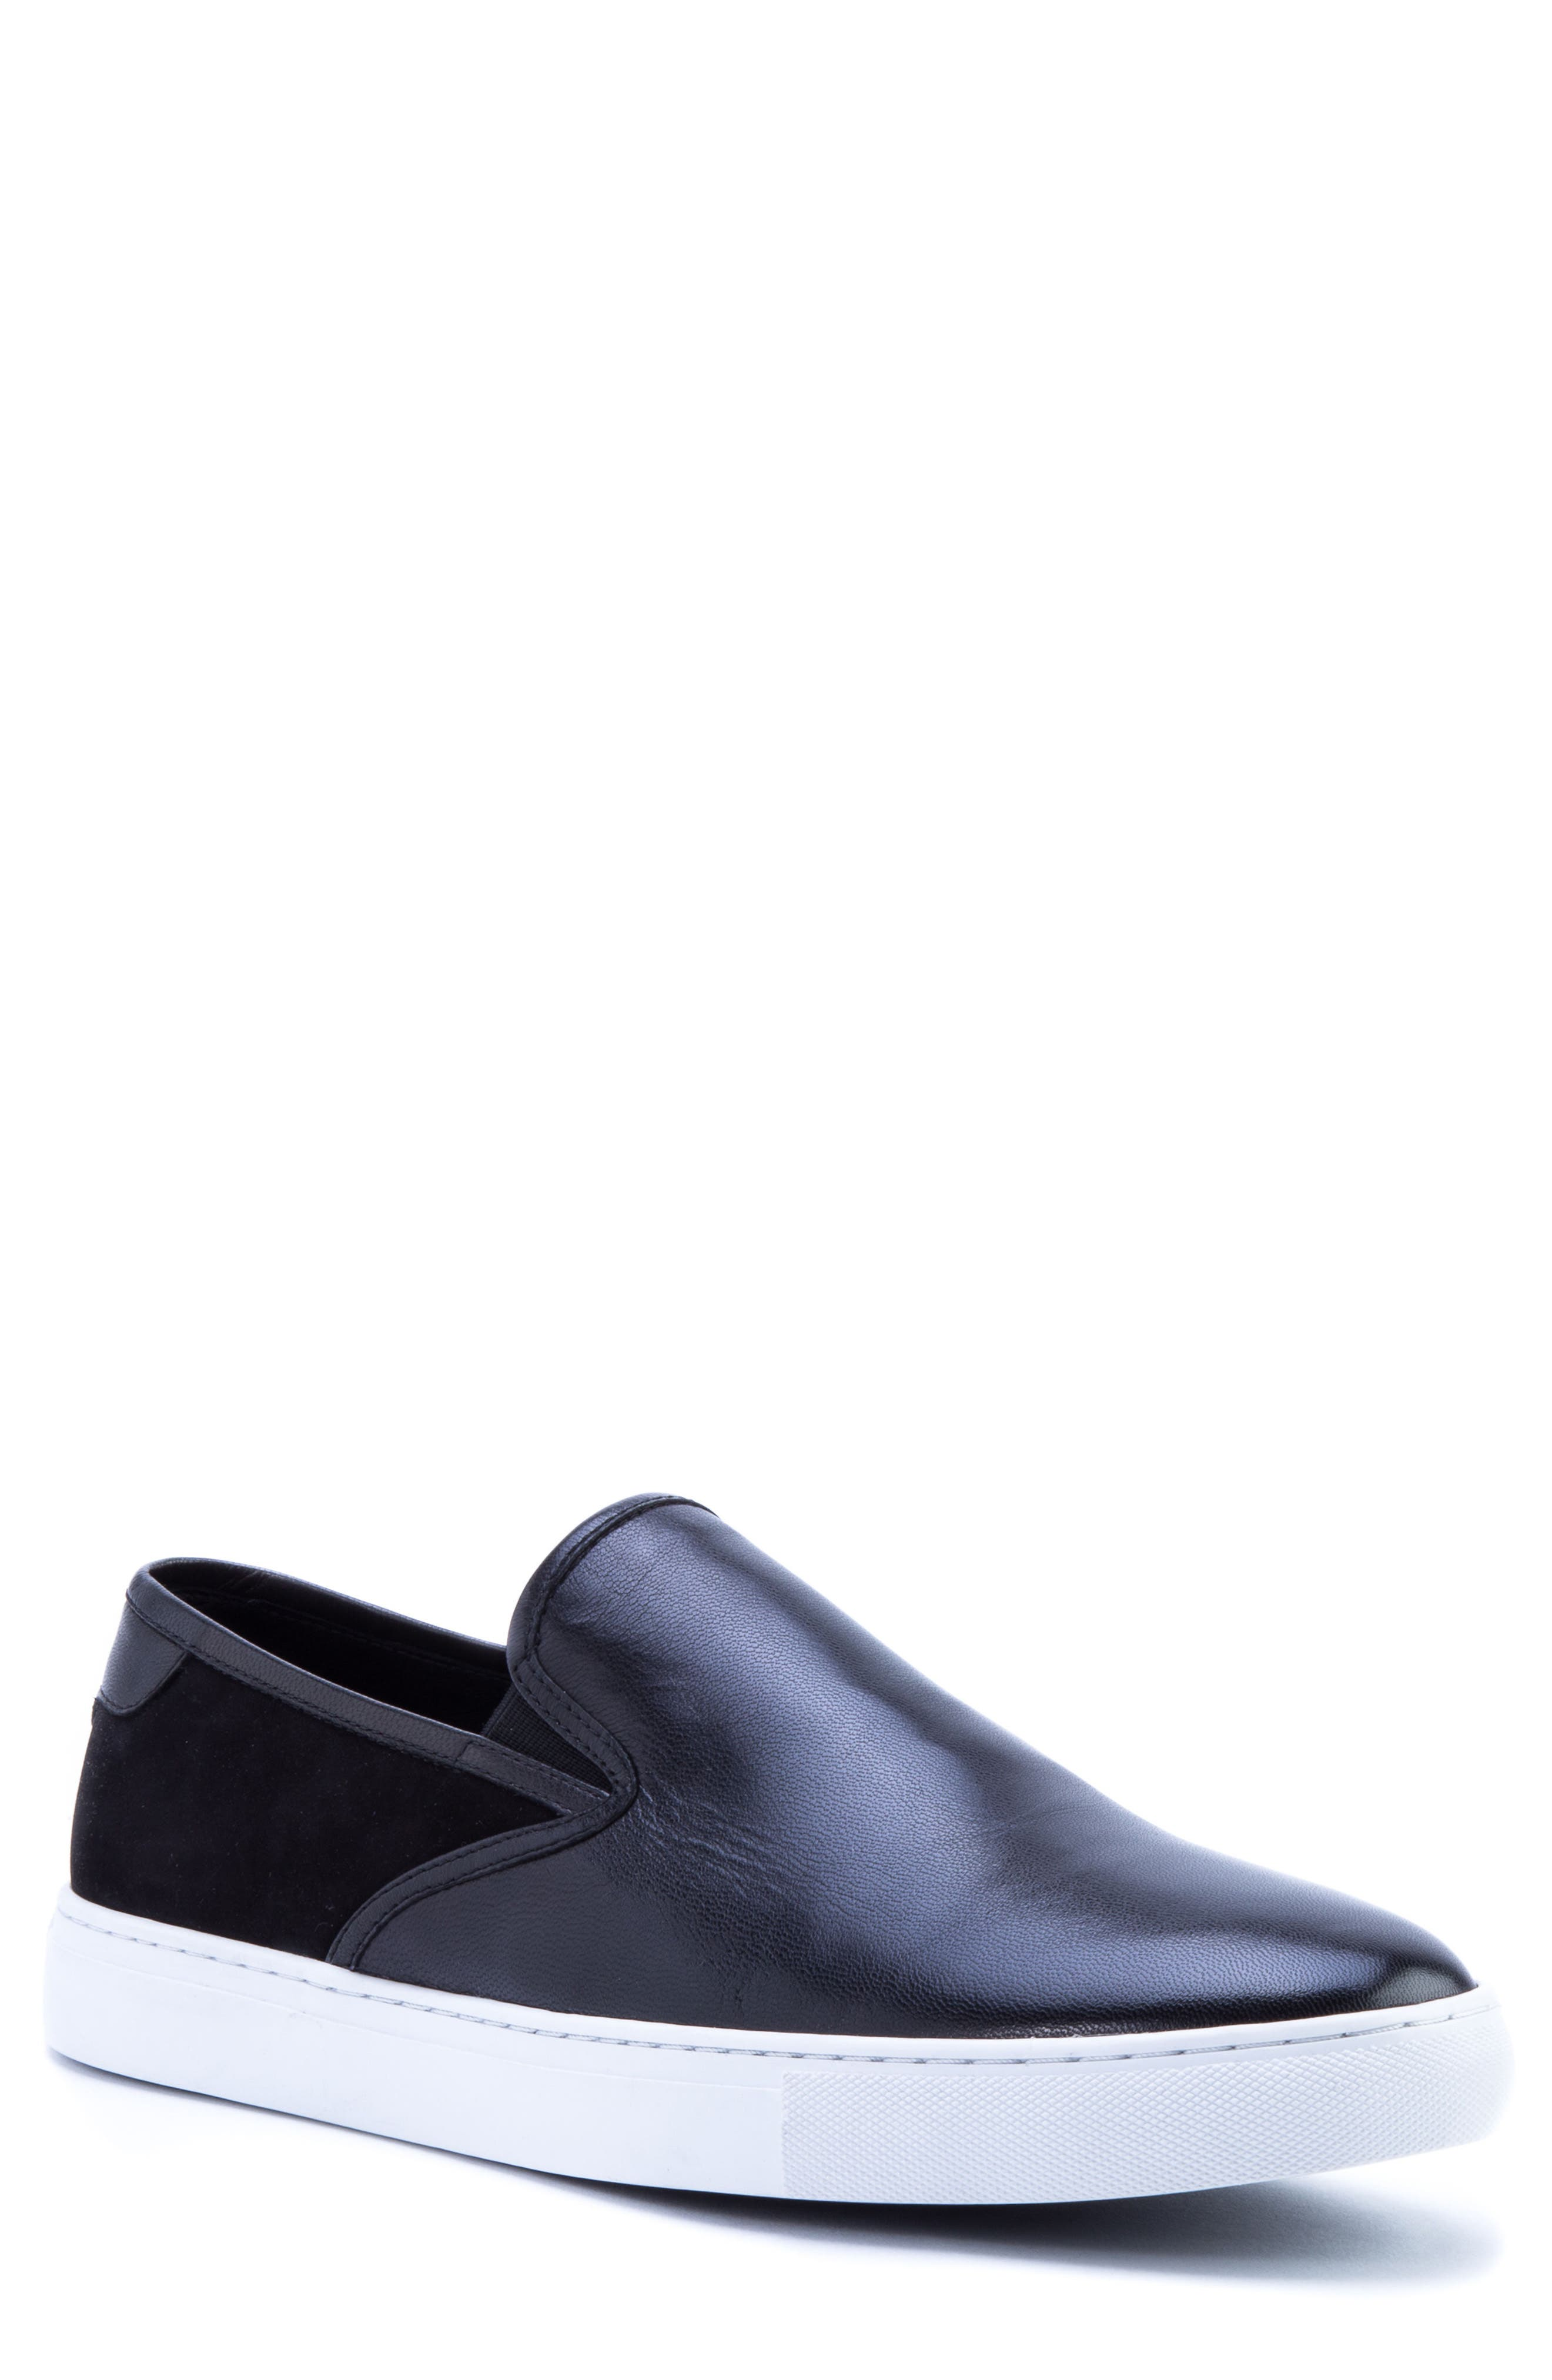 Duchamps Slip-On Sneaker,                             Main thumbnail 1, color,                             BLACK LEATHER/ SUEDE